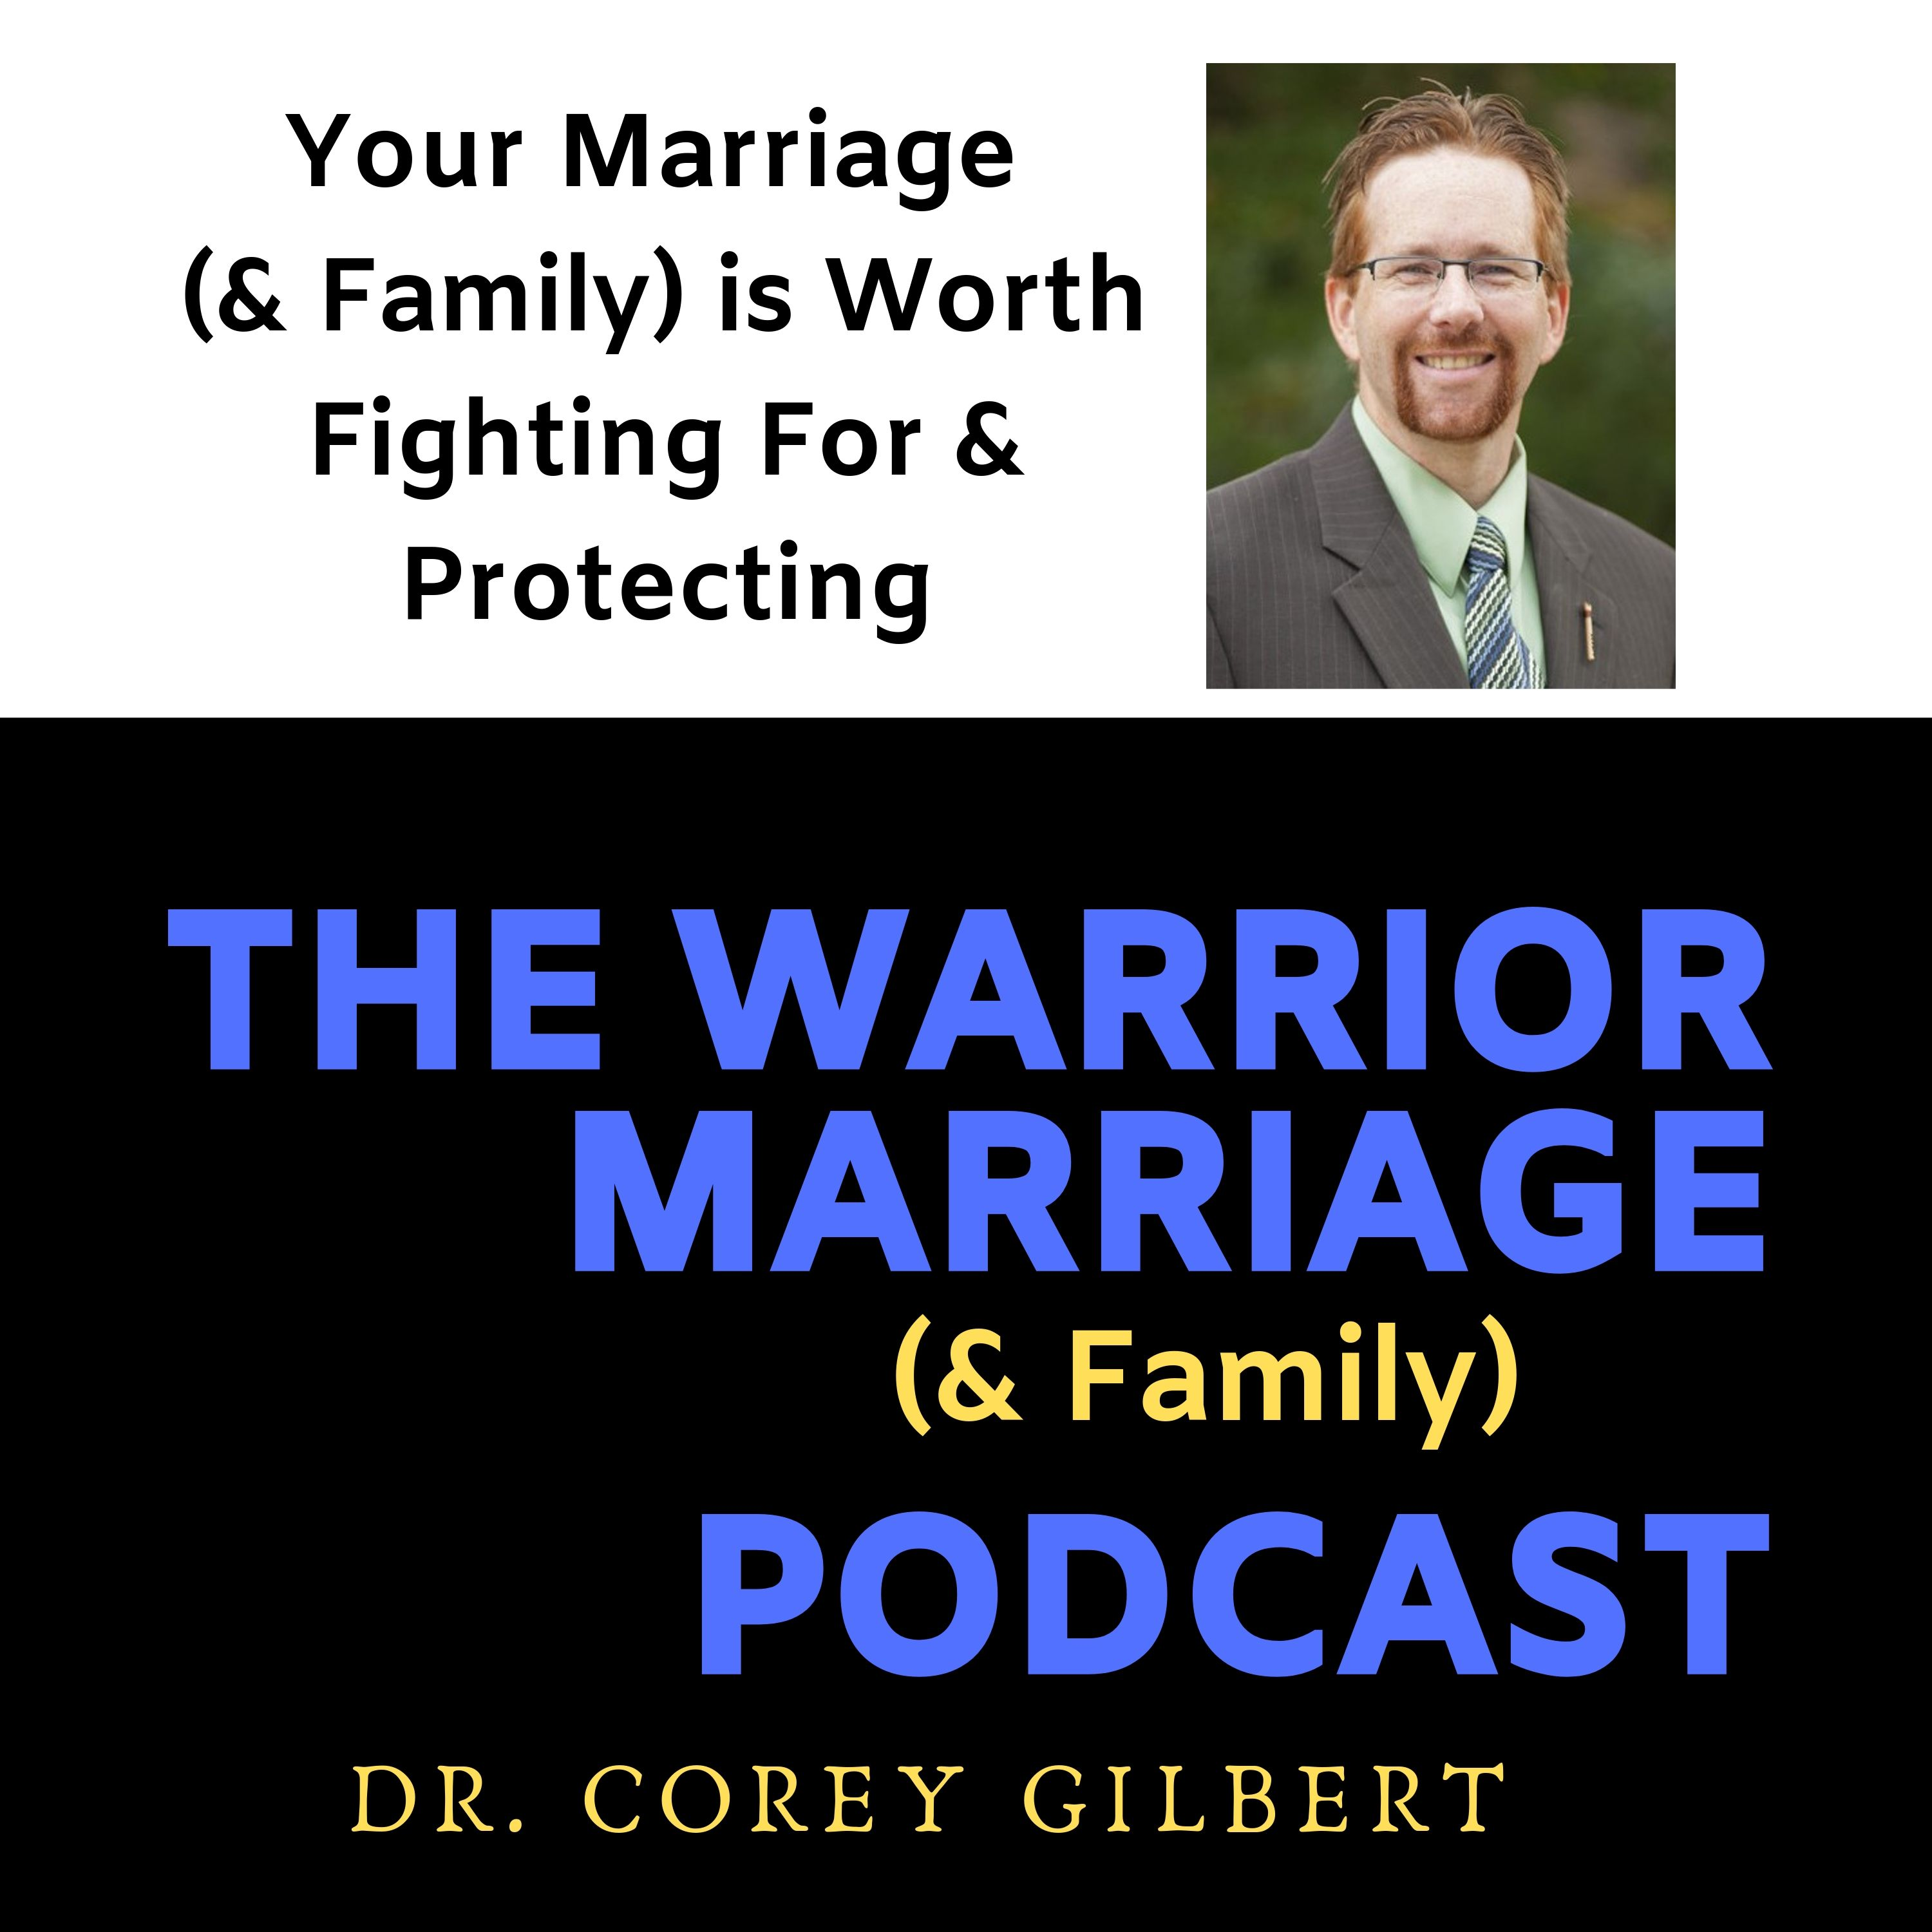 Episode 94 - At 11 months of Marriage - I faced a Life Threatening Event - The struggles that strengthened us!